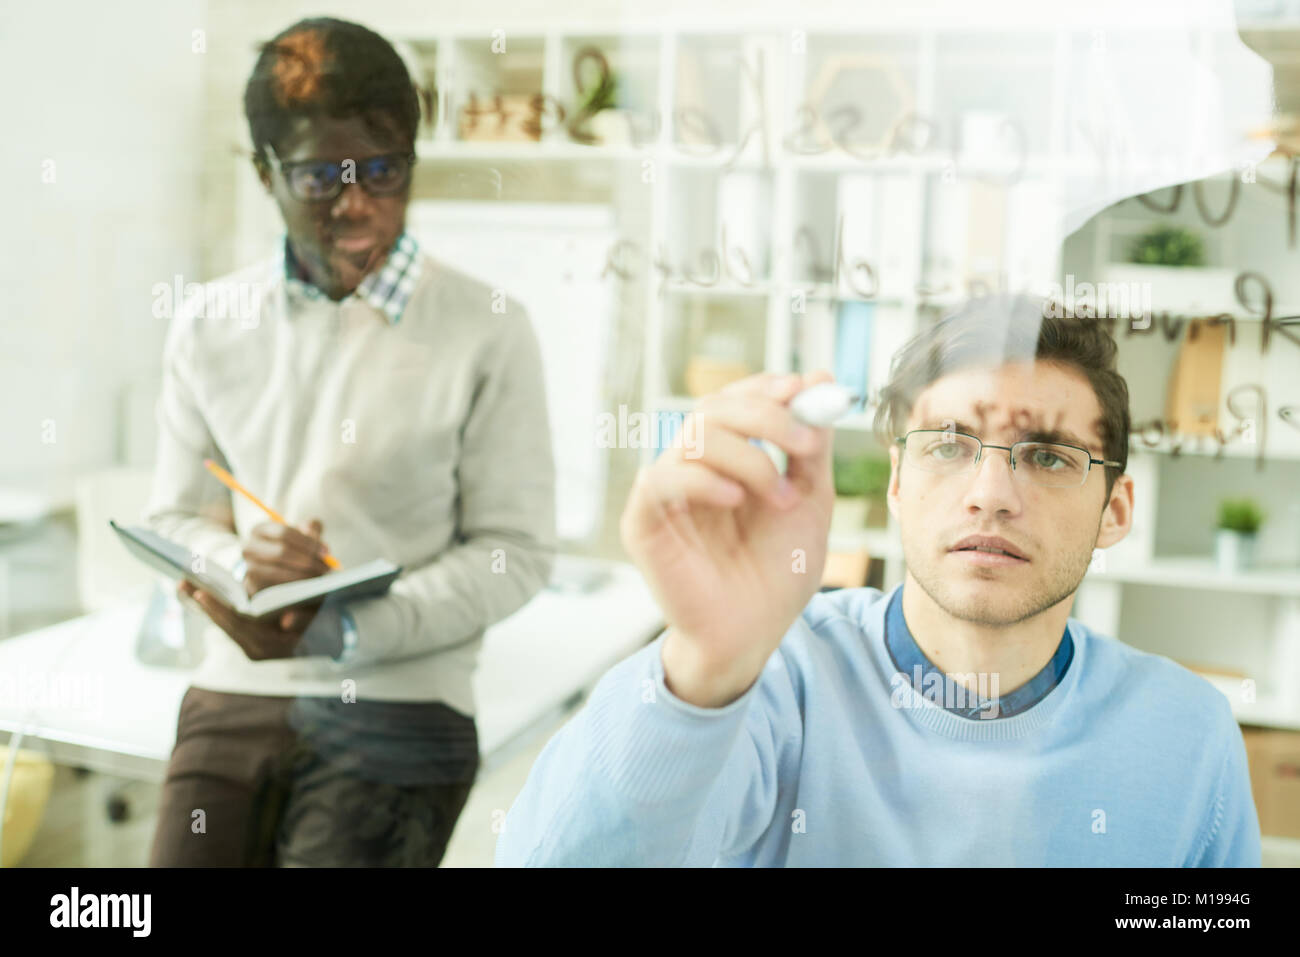 IT Developers Writing on Glass Wall - Stock Image